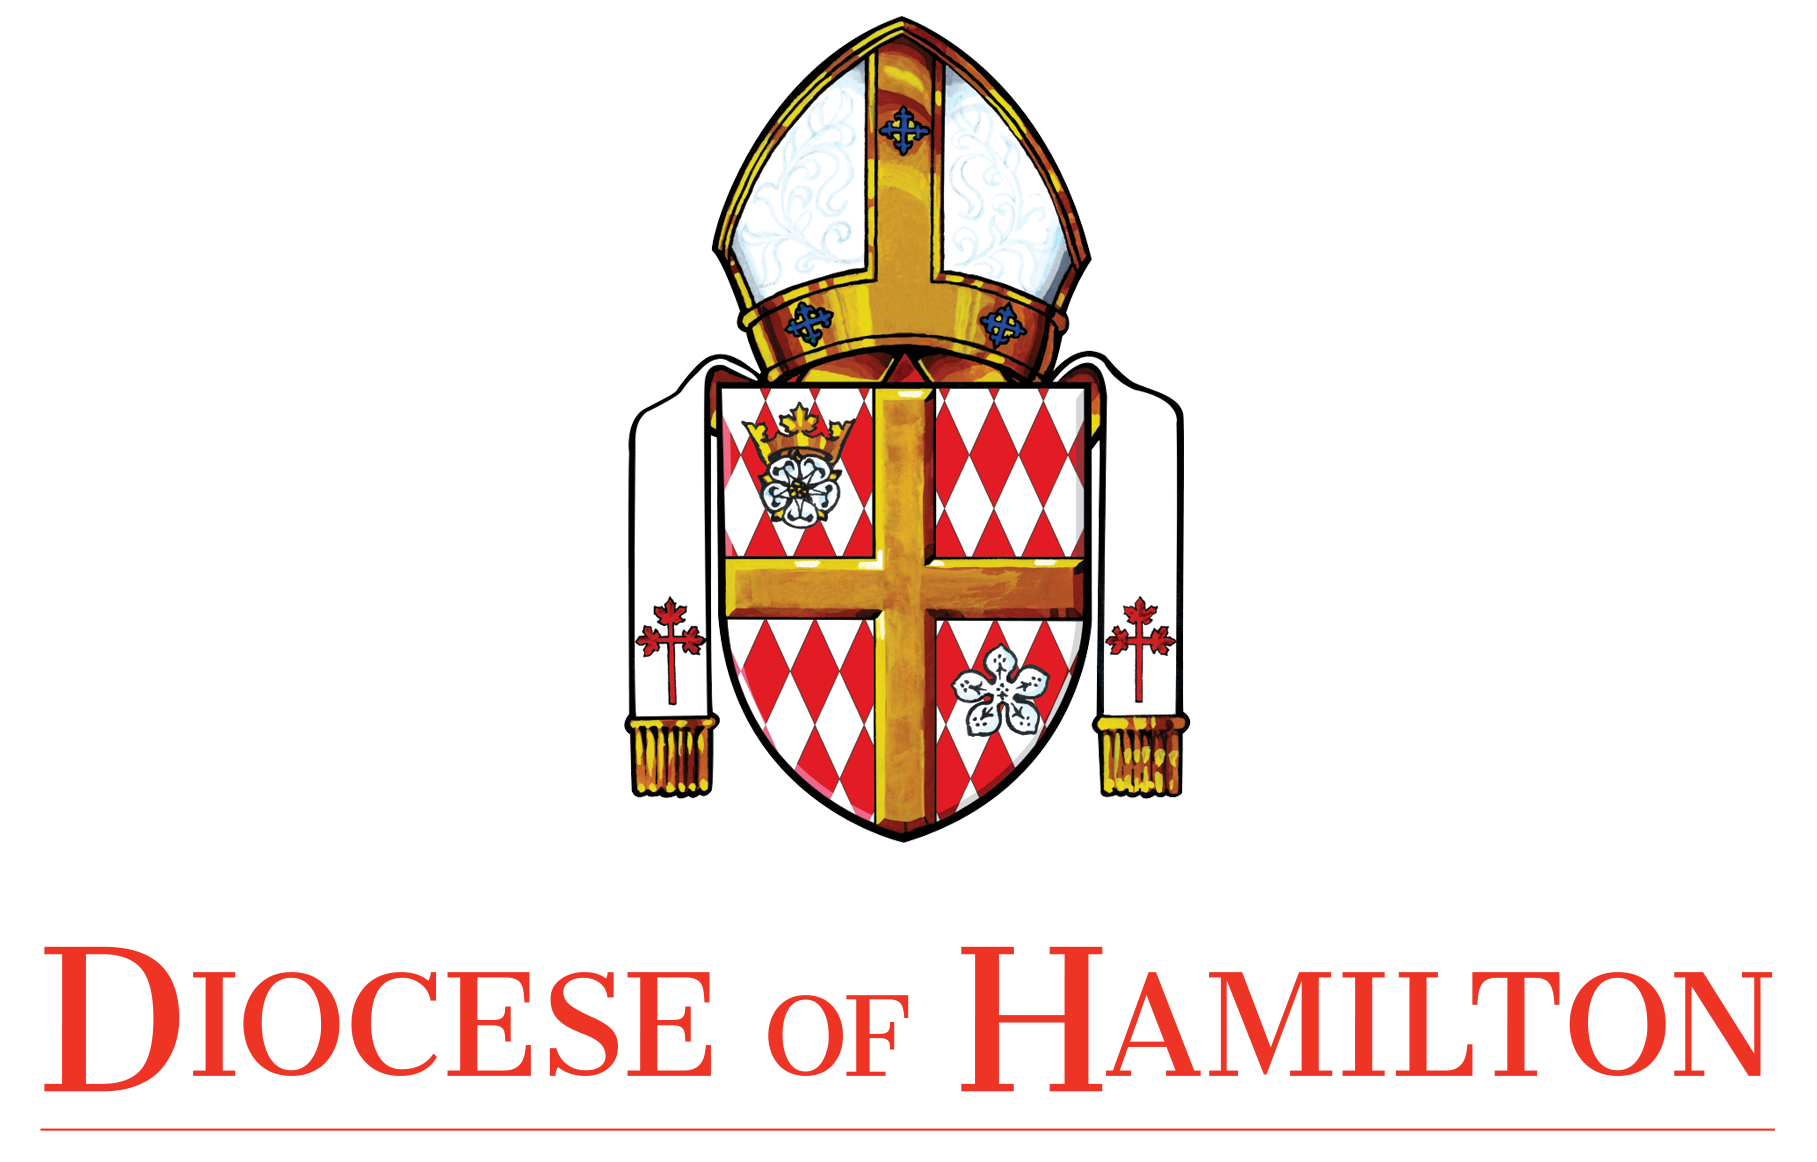 Diocese of Hamilton